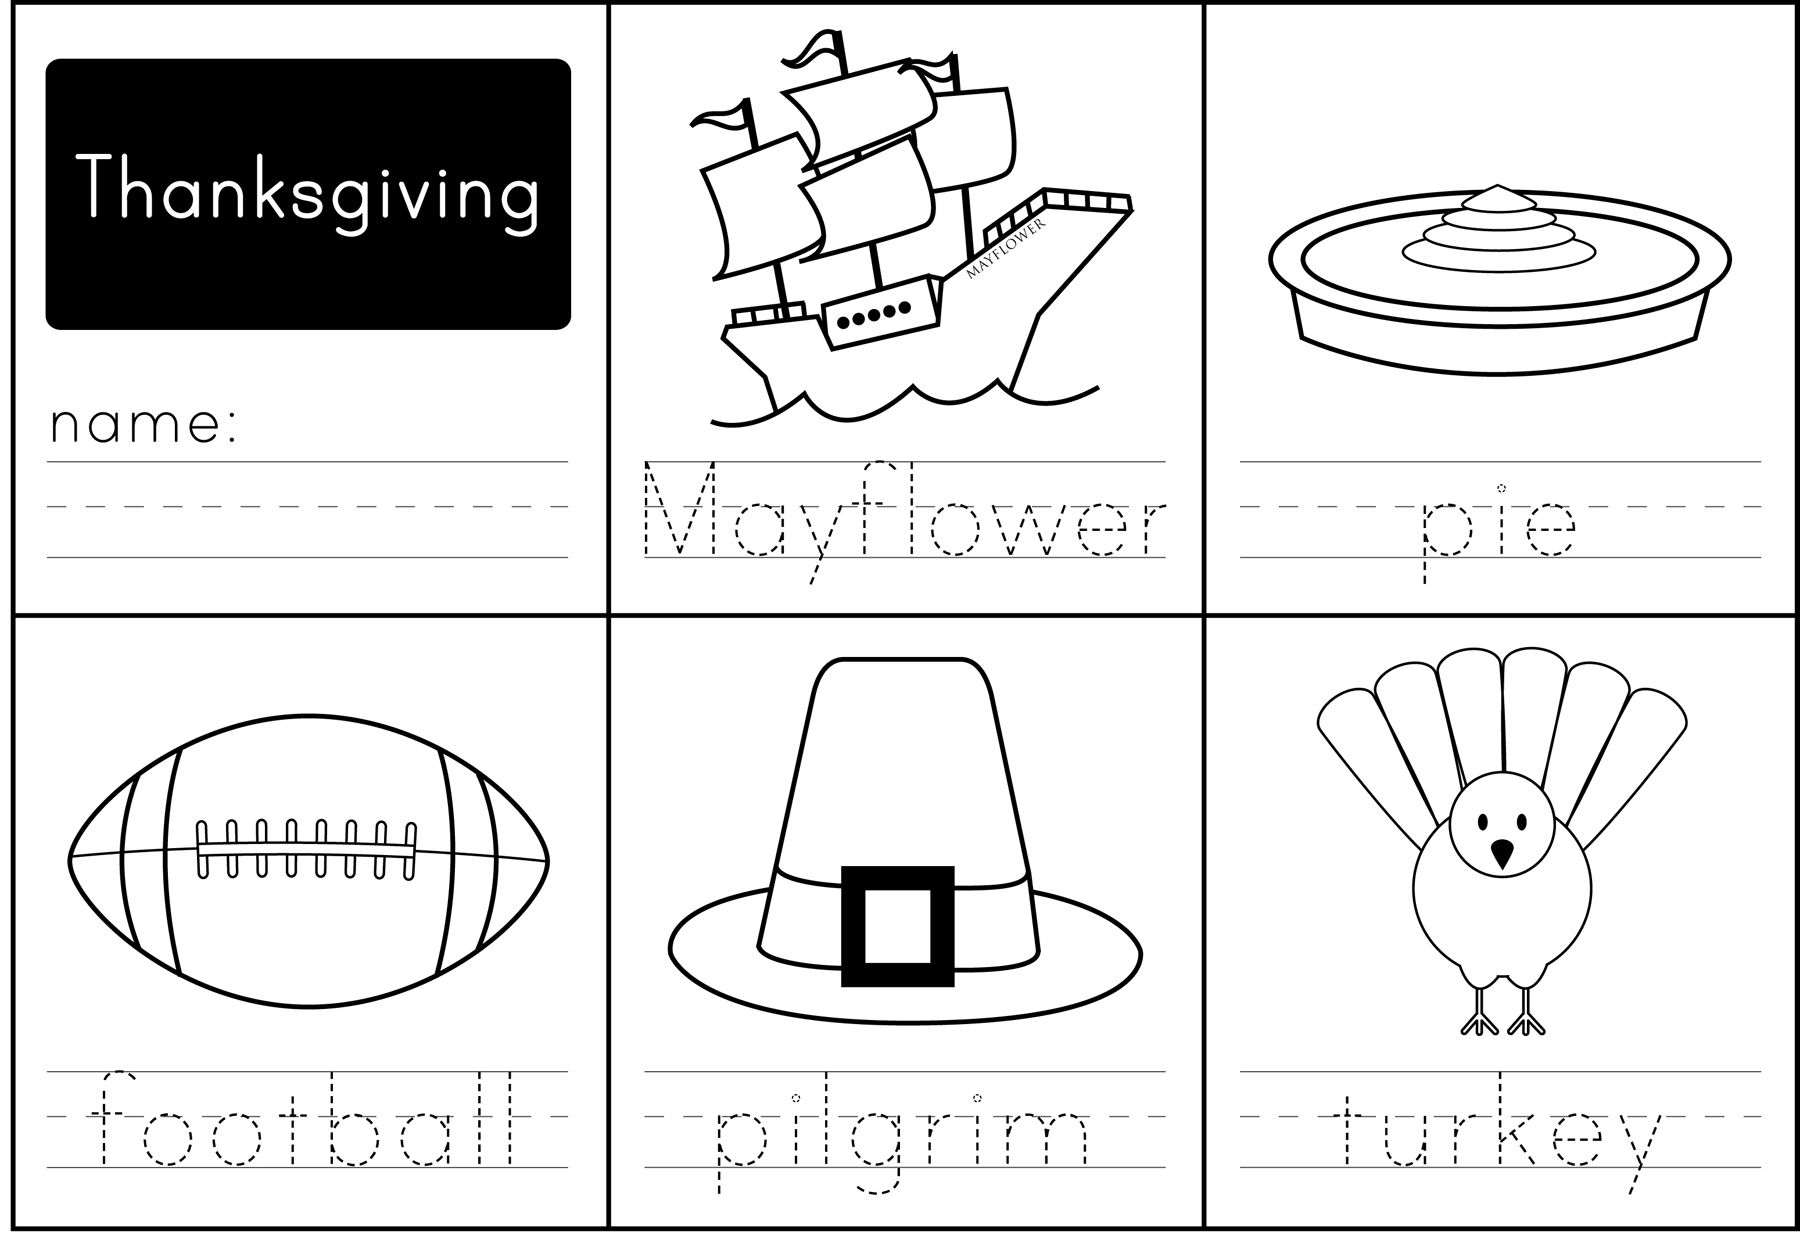 Thanksgiving Activities With Images